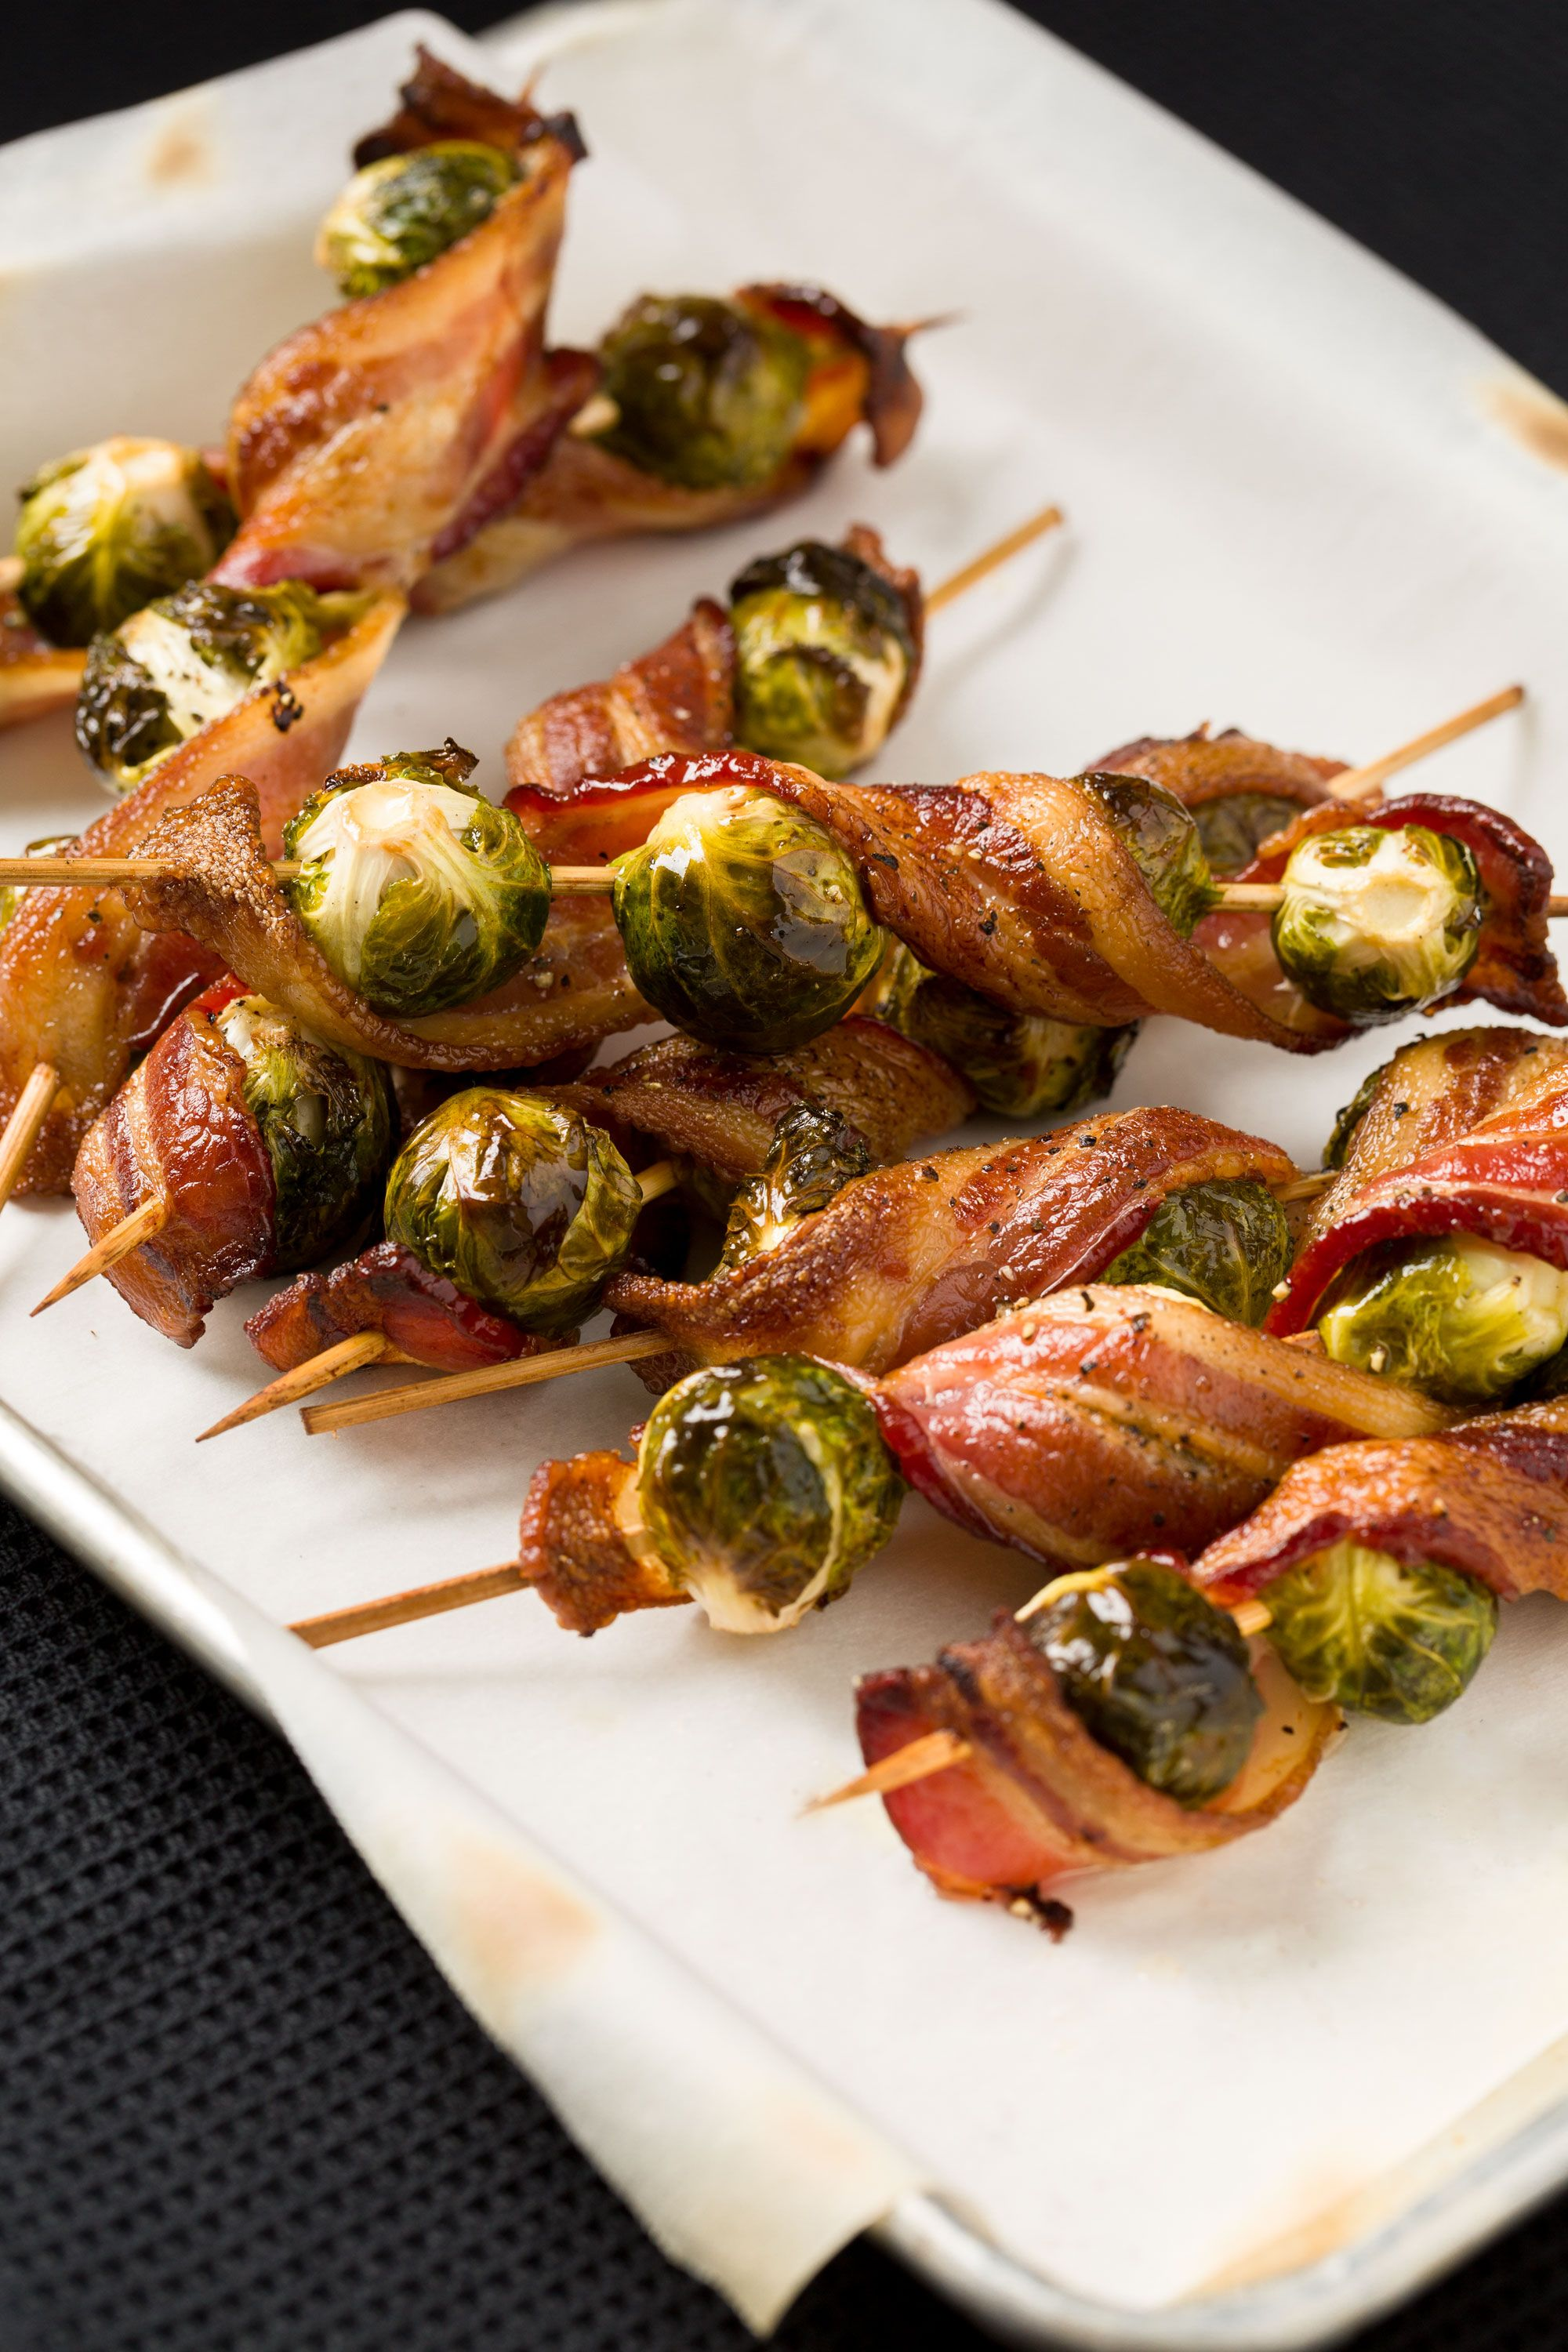 "<p>Over the bacon trend? Pssh. Twirl slices around Brussels sprouts for a finger food to remember.</p><p>Get the recipe on <a target=""_blank"" href=""http://www.delish.com/entertaining/tabletop/recipes/a44512/bacon-brussels-sprout-skewers-recipe/"">Delish</a>.<br></p>"